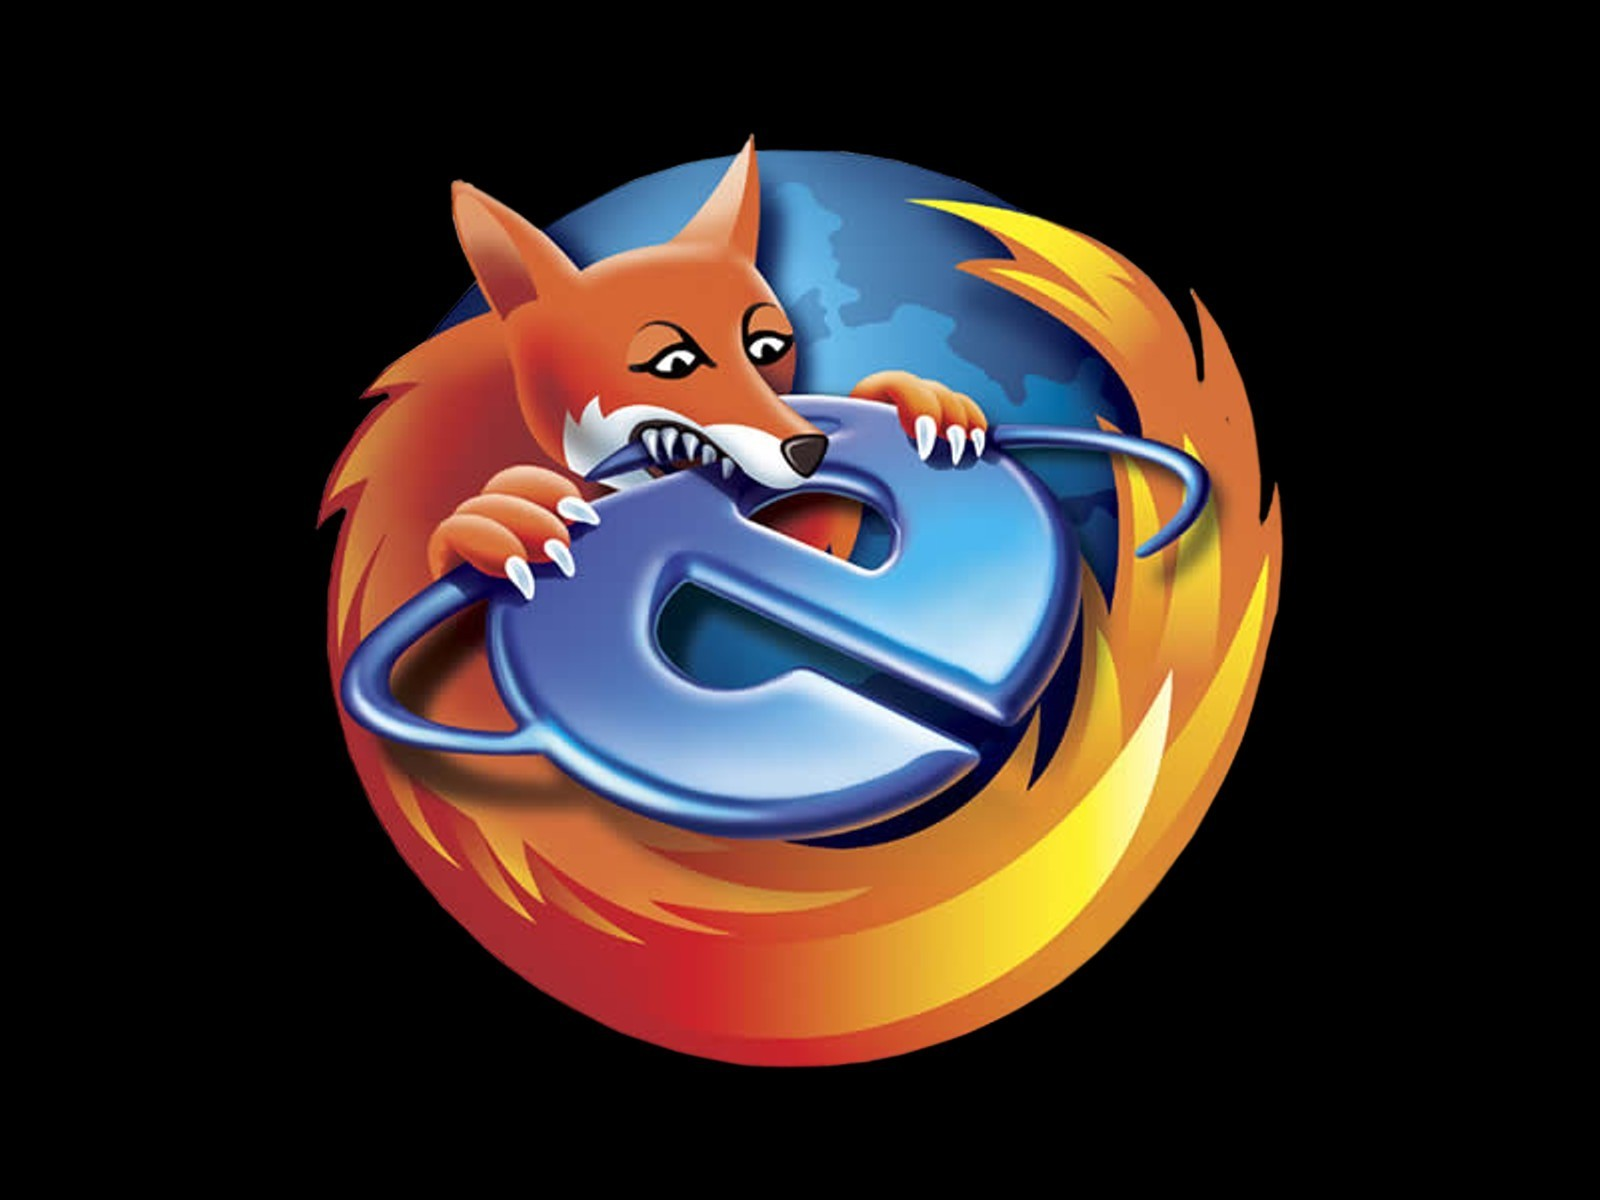 Firefox Images Icons Wallpapers and Photos on Fanpop 1600x1200